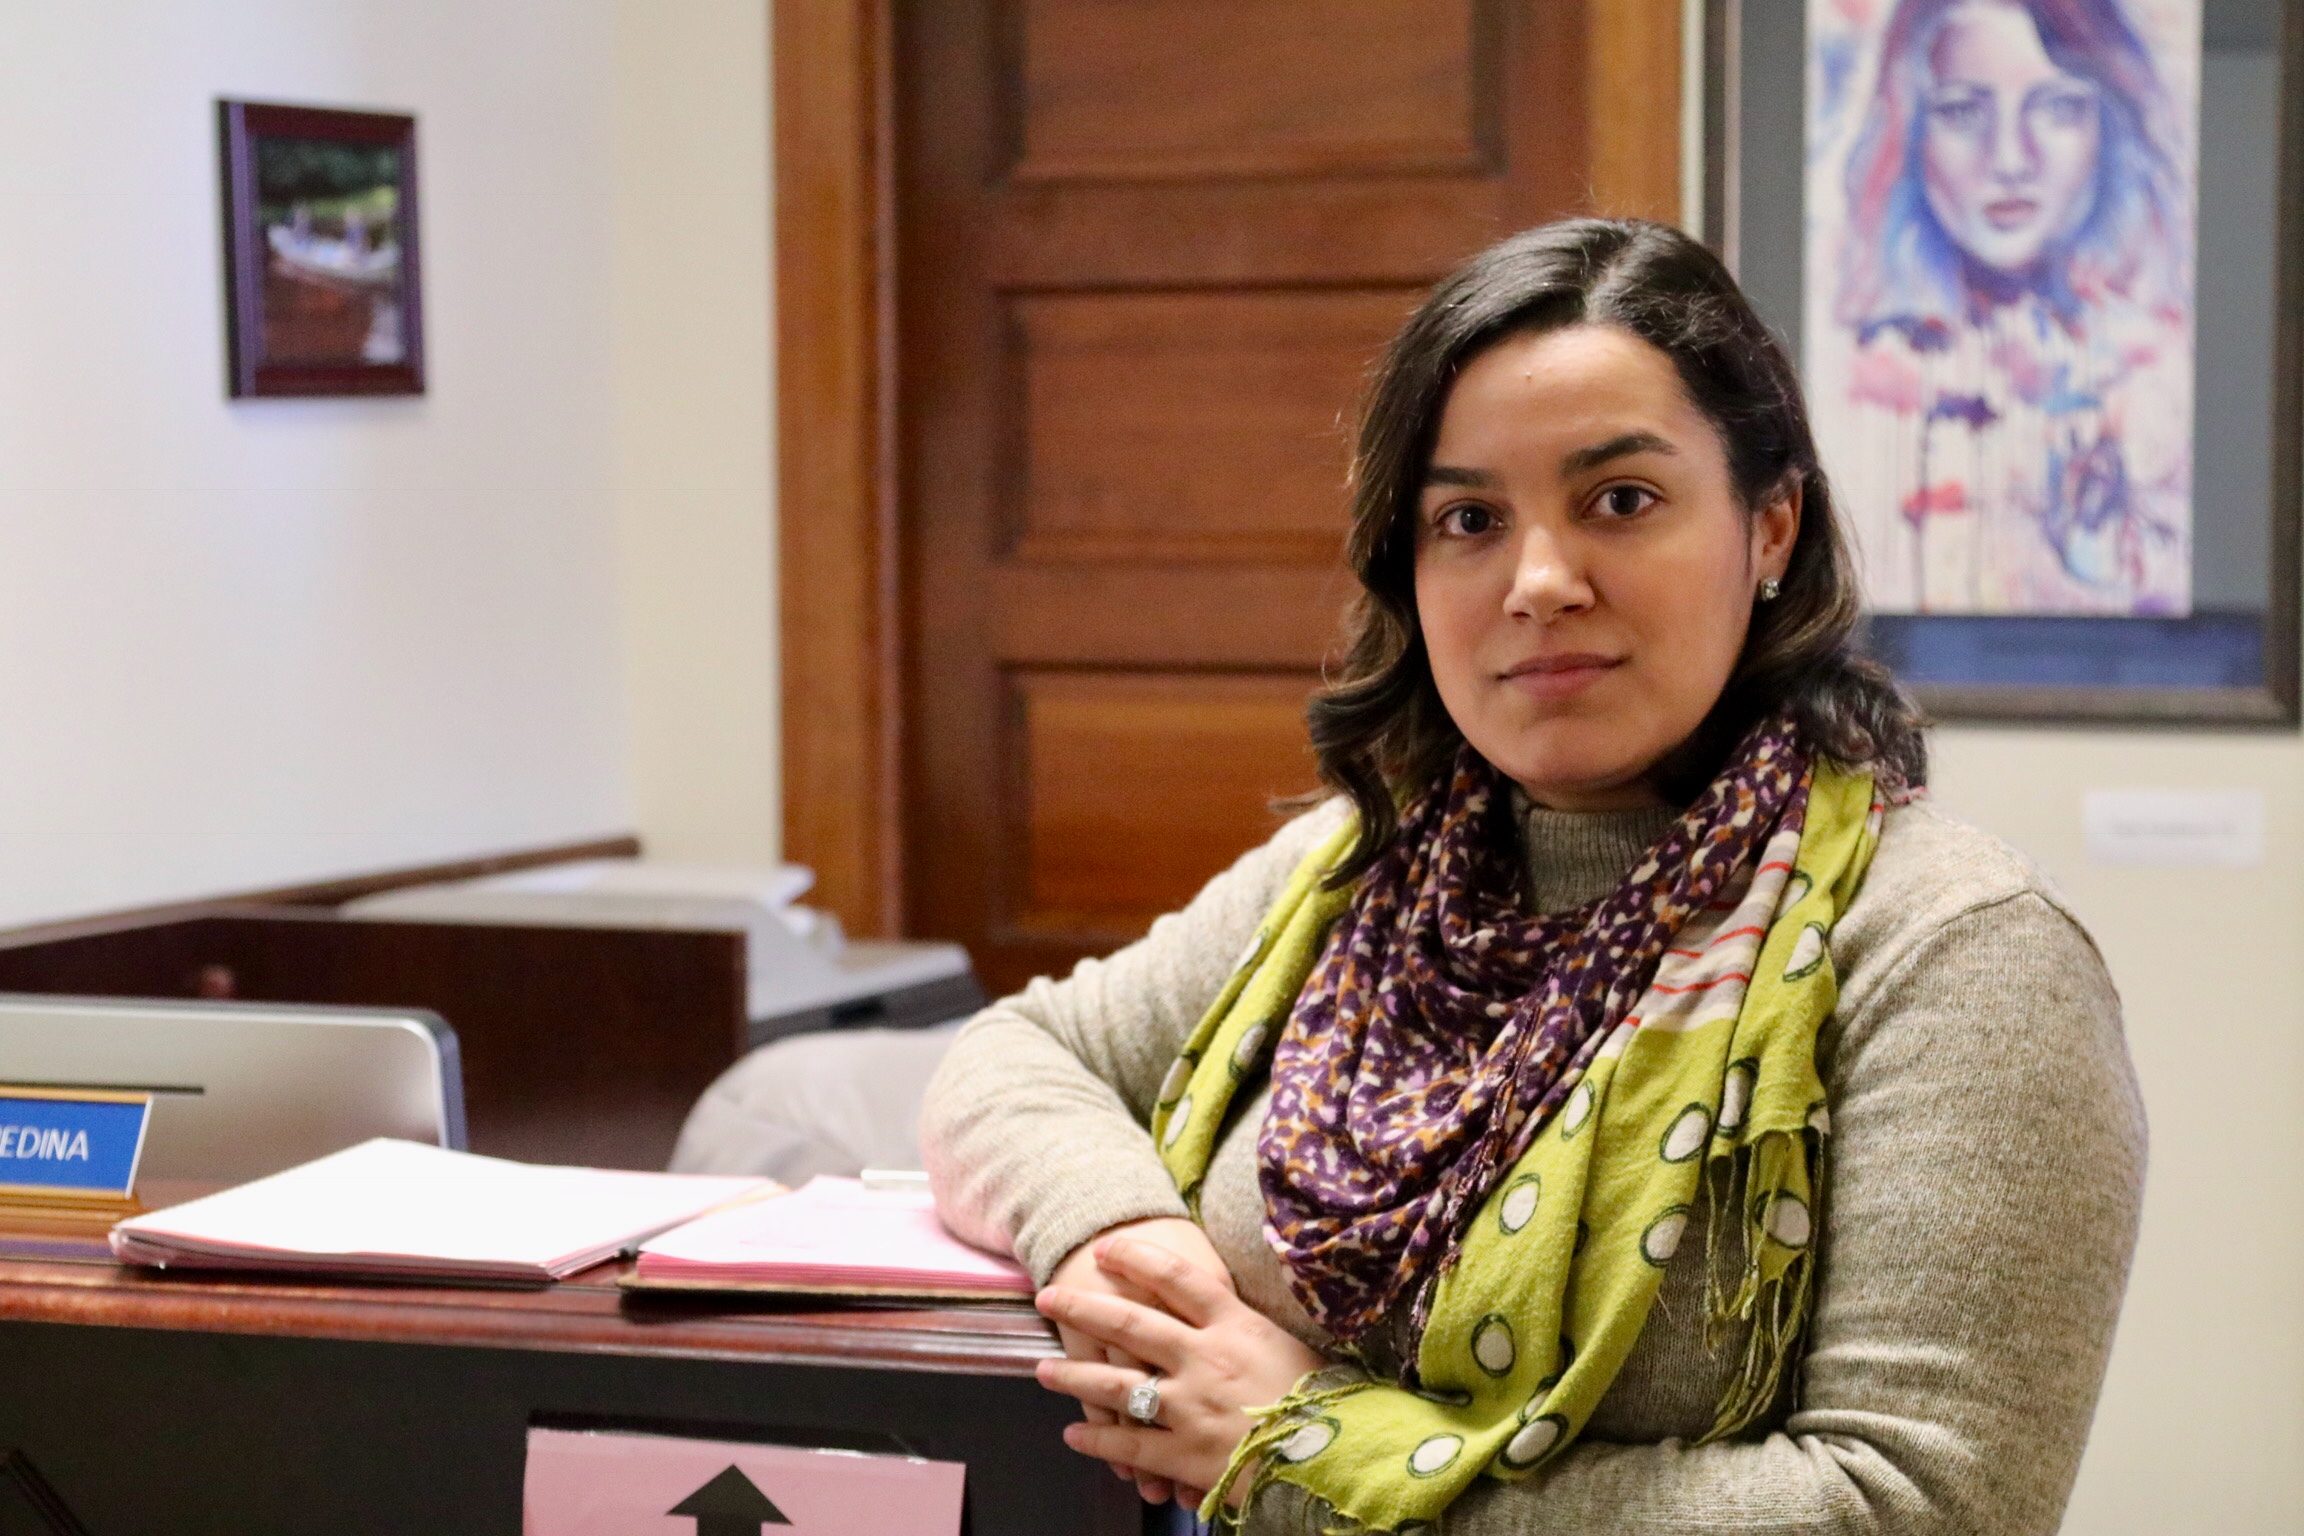 The Heart of the Upper School Office: Get to Know Darlyn Medina